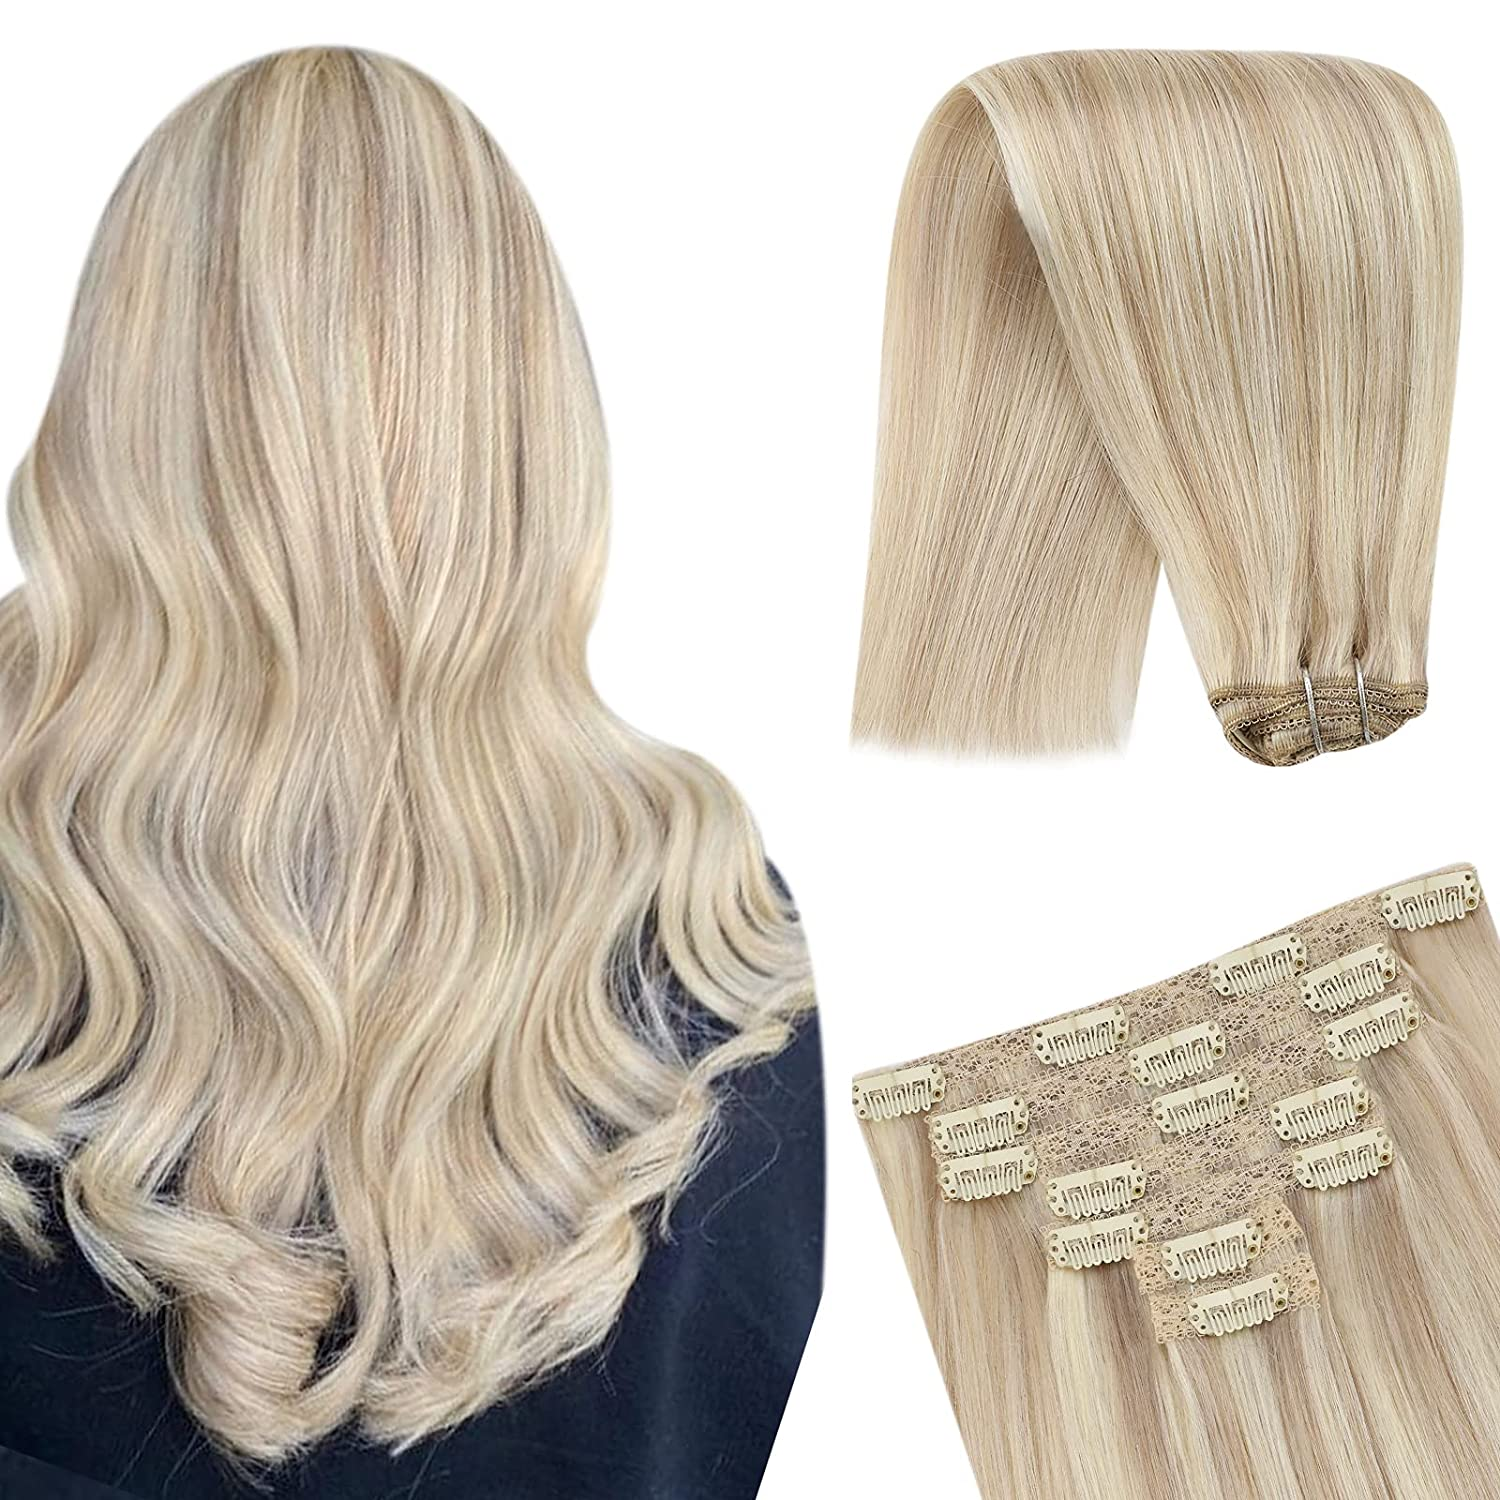 YoungSee Blonde Hair Branded goods Extensions 12inch Extens in Clip Popular overseas Human